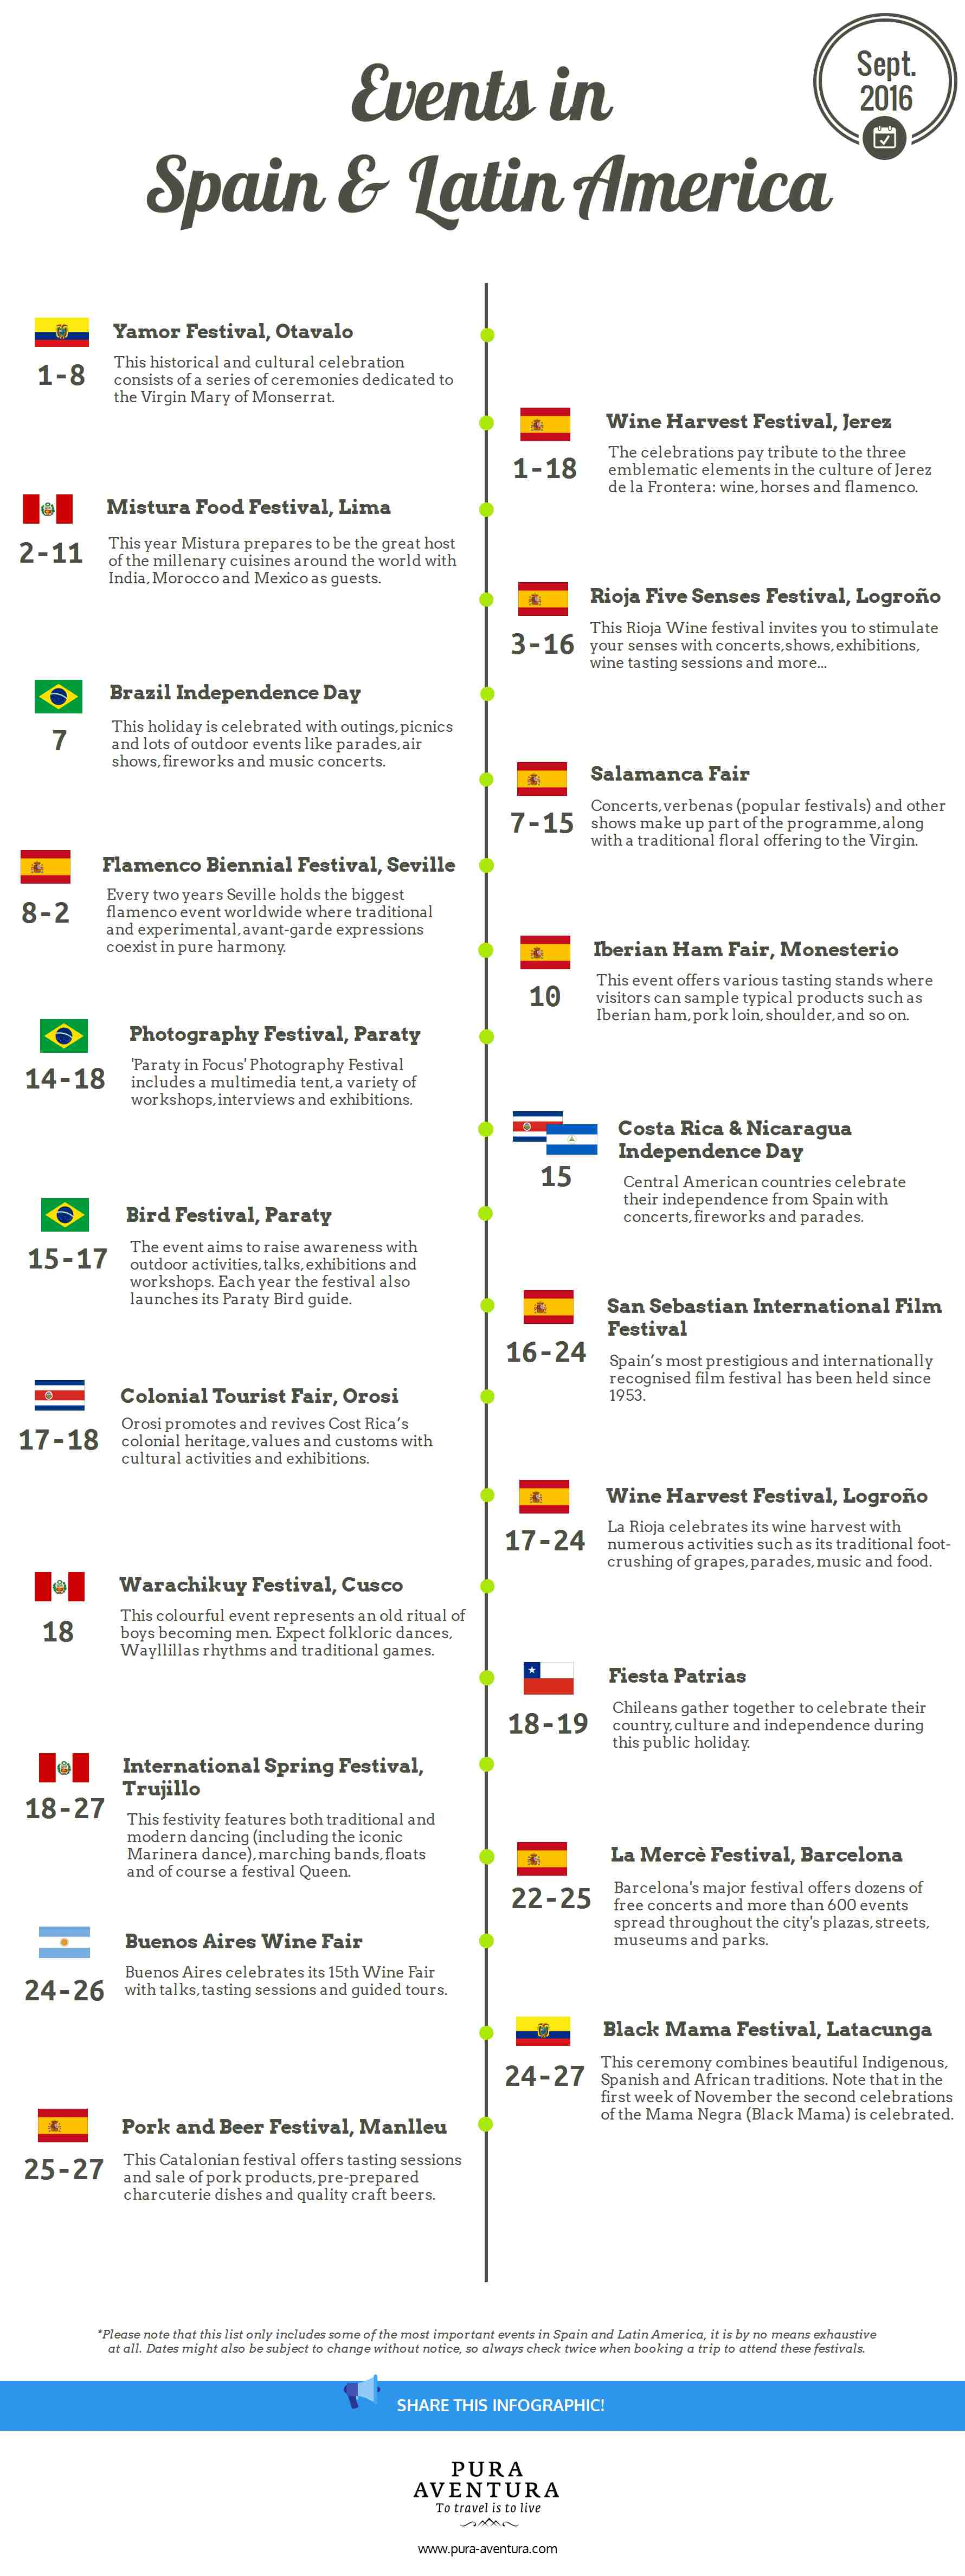 Events in Spain and Latin America, September 2016